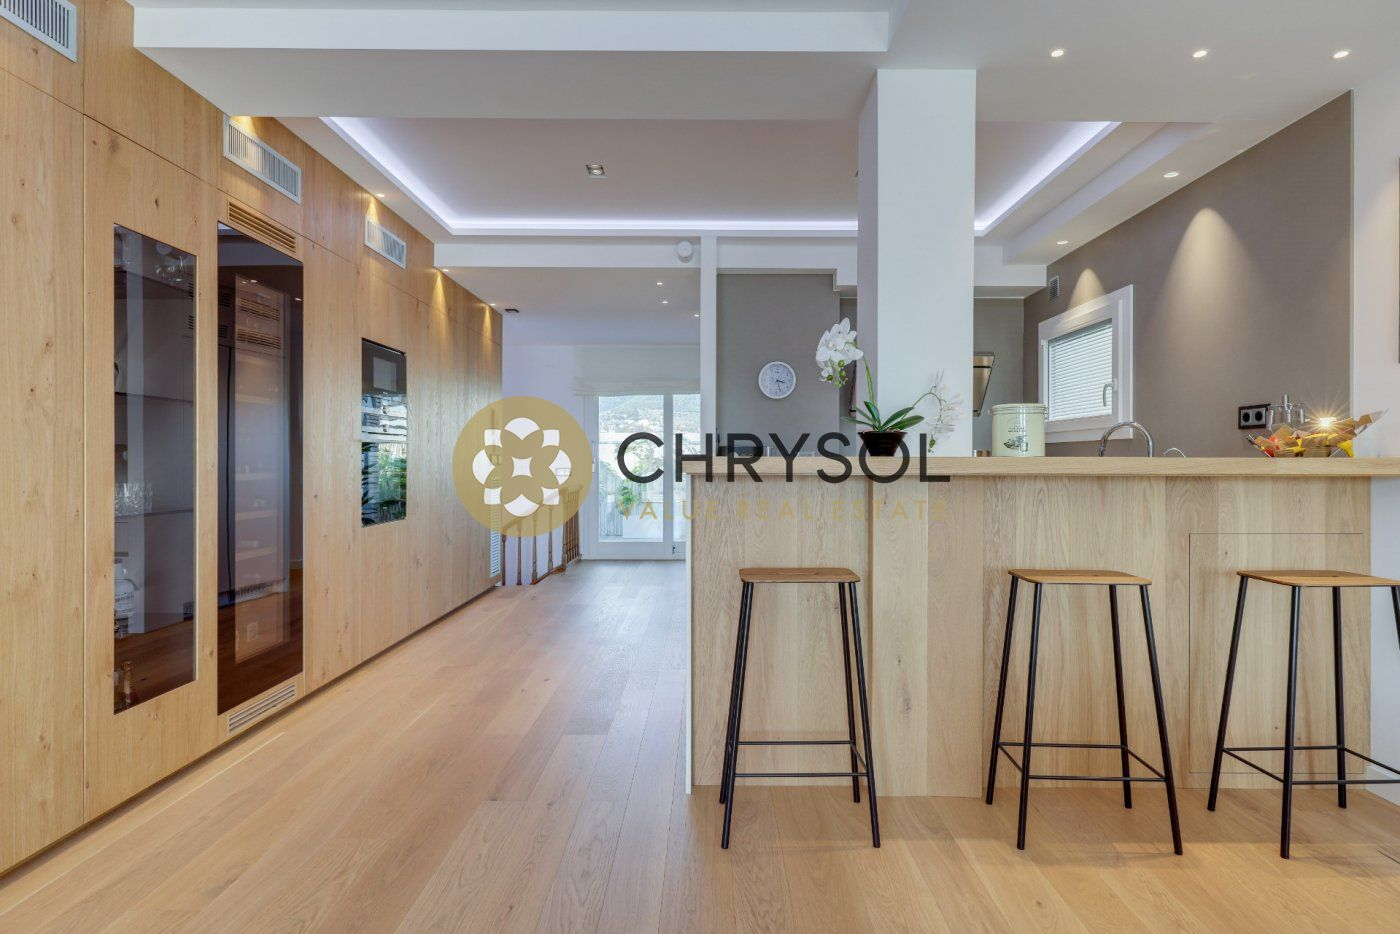 Photogallery - 36 - Chrysol Value